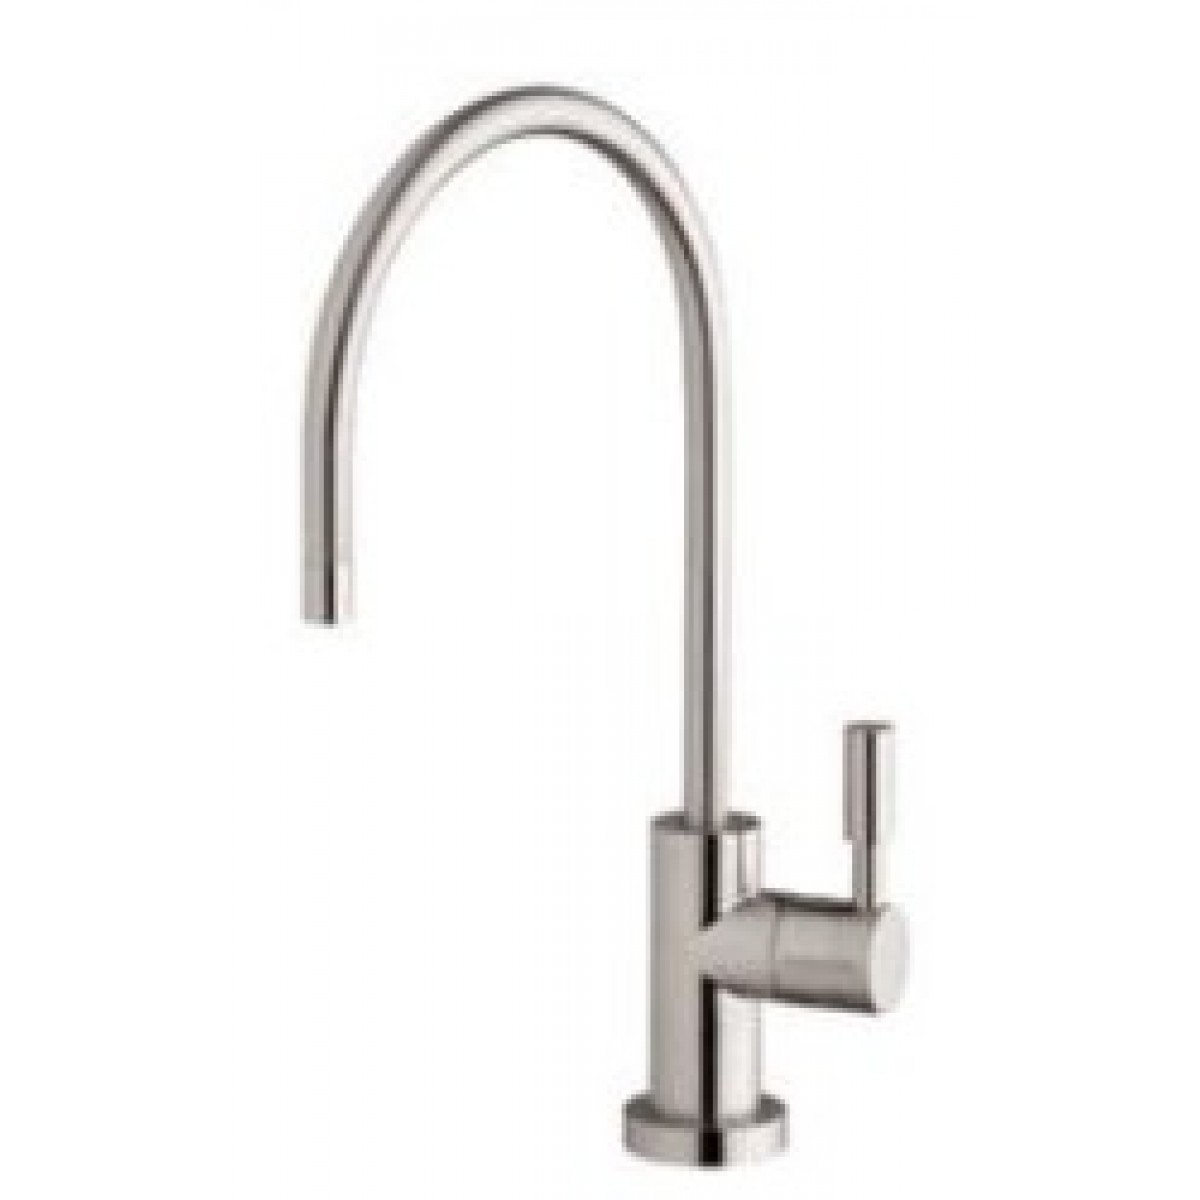 Ideas, delta drinking water faucet delta drinking water faucet replacement faucets for point of use water waterfilters 1200 x 1200  .